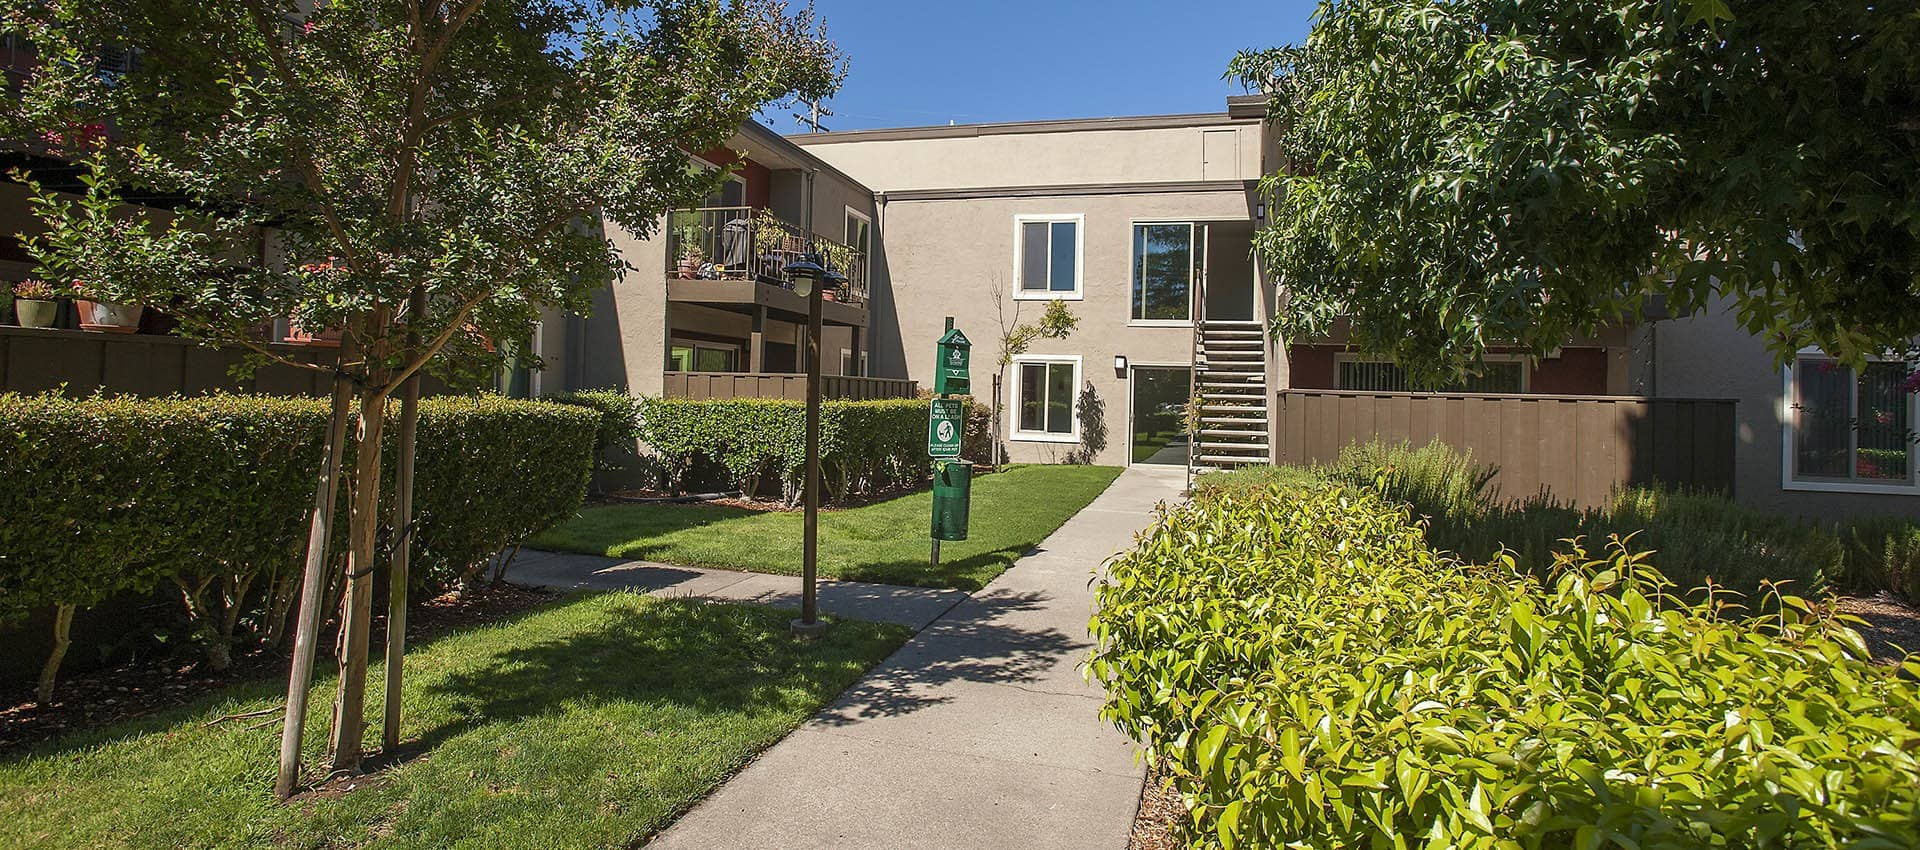 Pathway To Residence at Flora Condominium Rentals in Walnut Creek, California